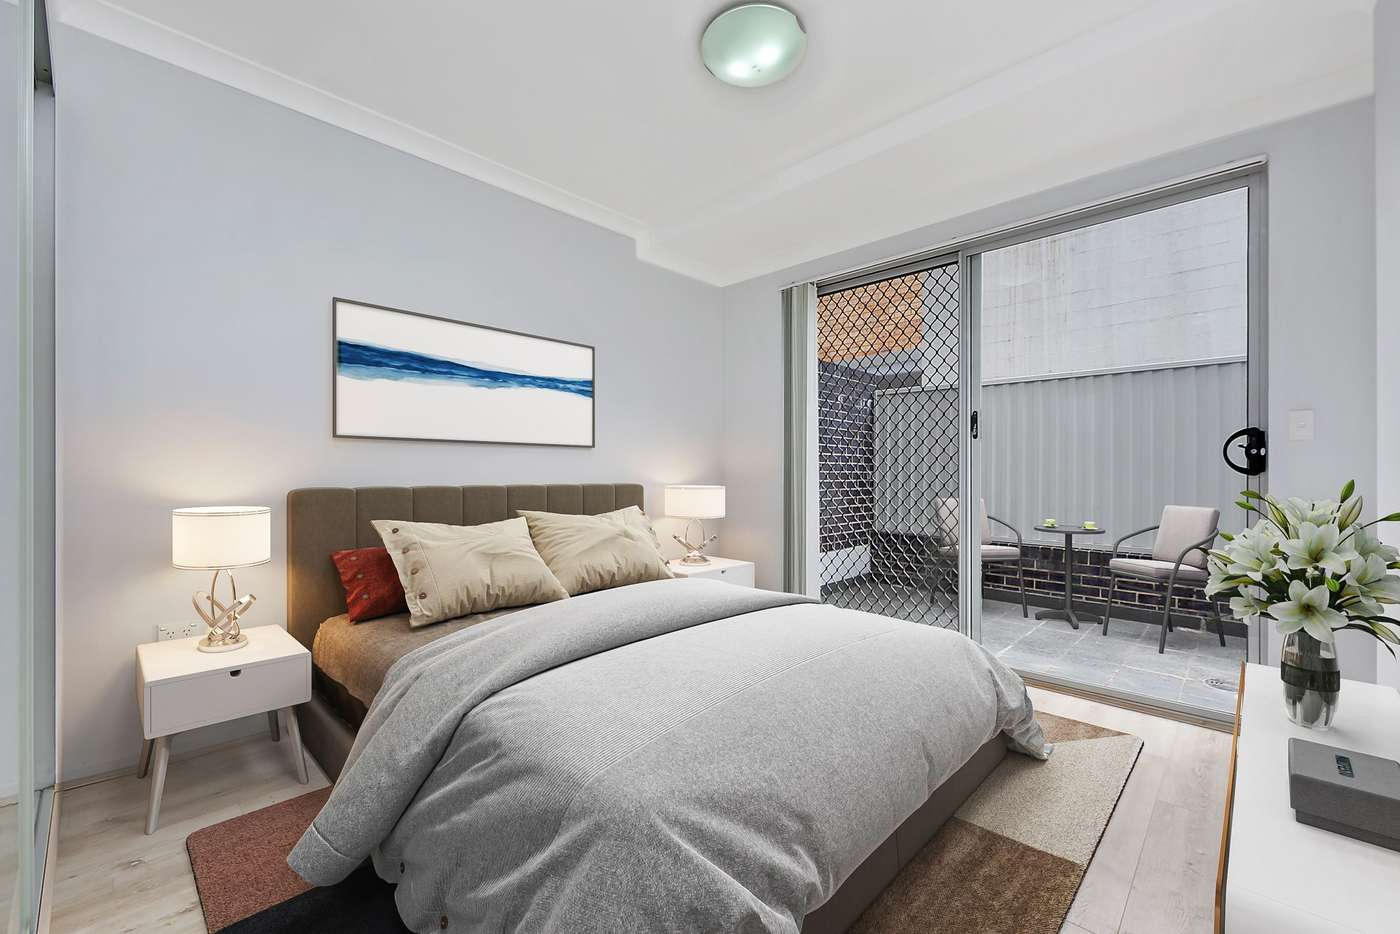 Fifth view of Homely apartment listing, 11/51A-53 High Street, Parramatta NSW 2150